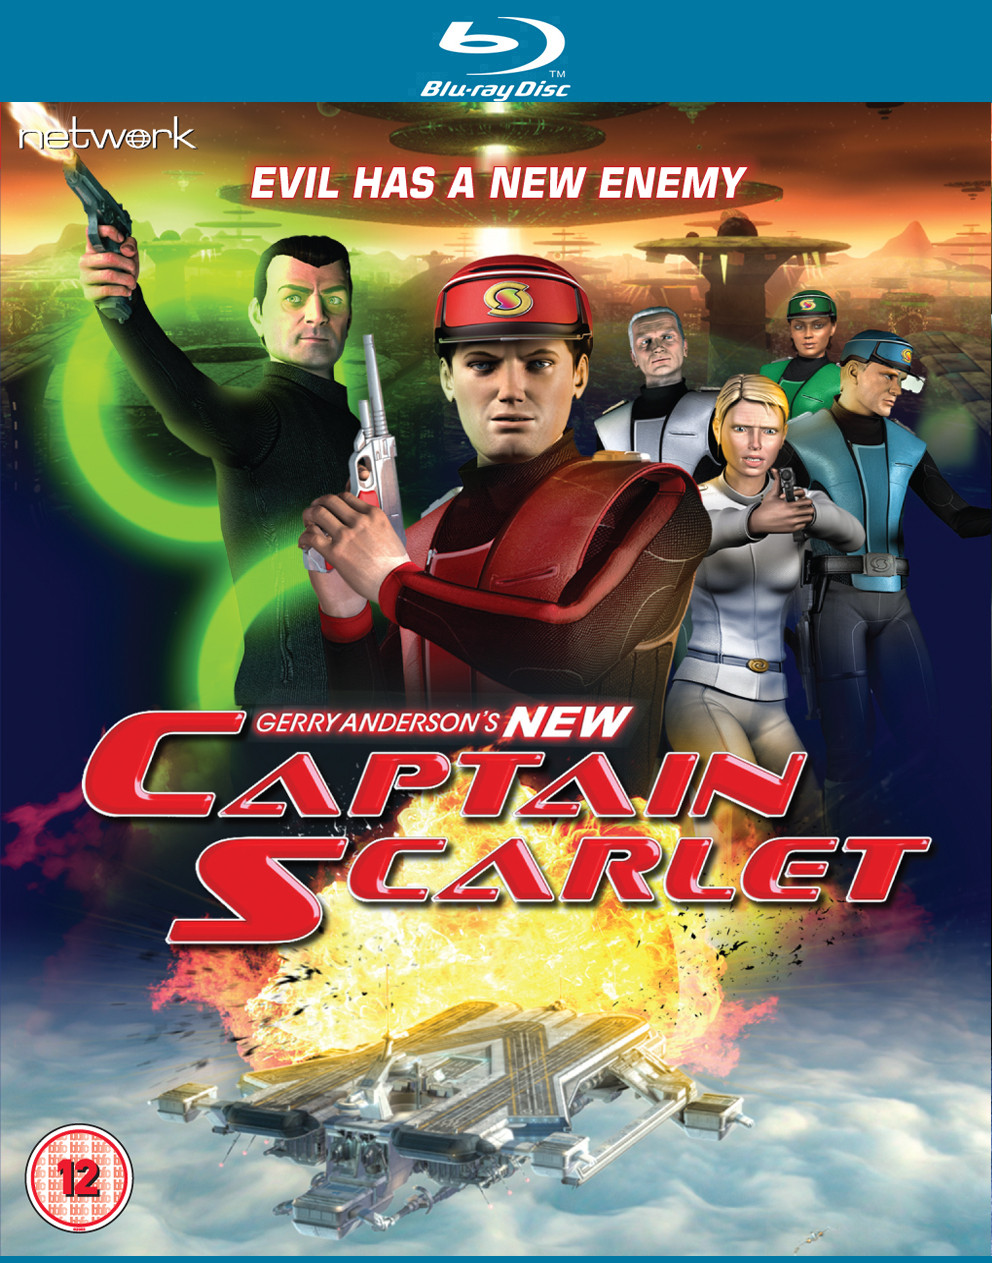 New Captain Scarlet Blu-Ray